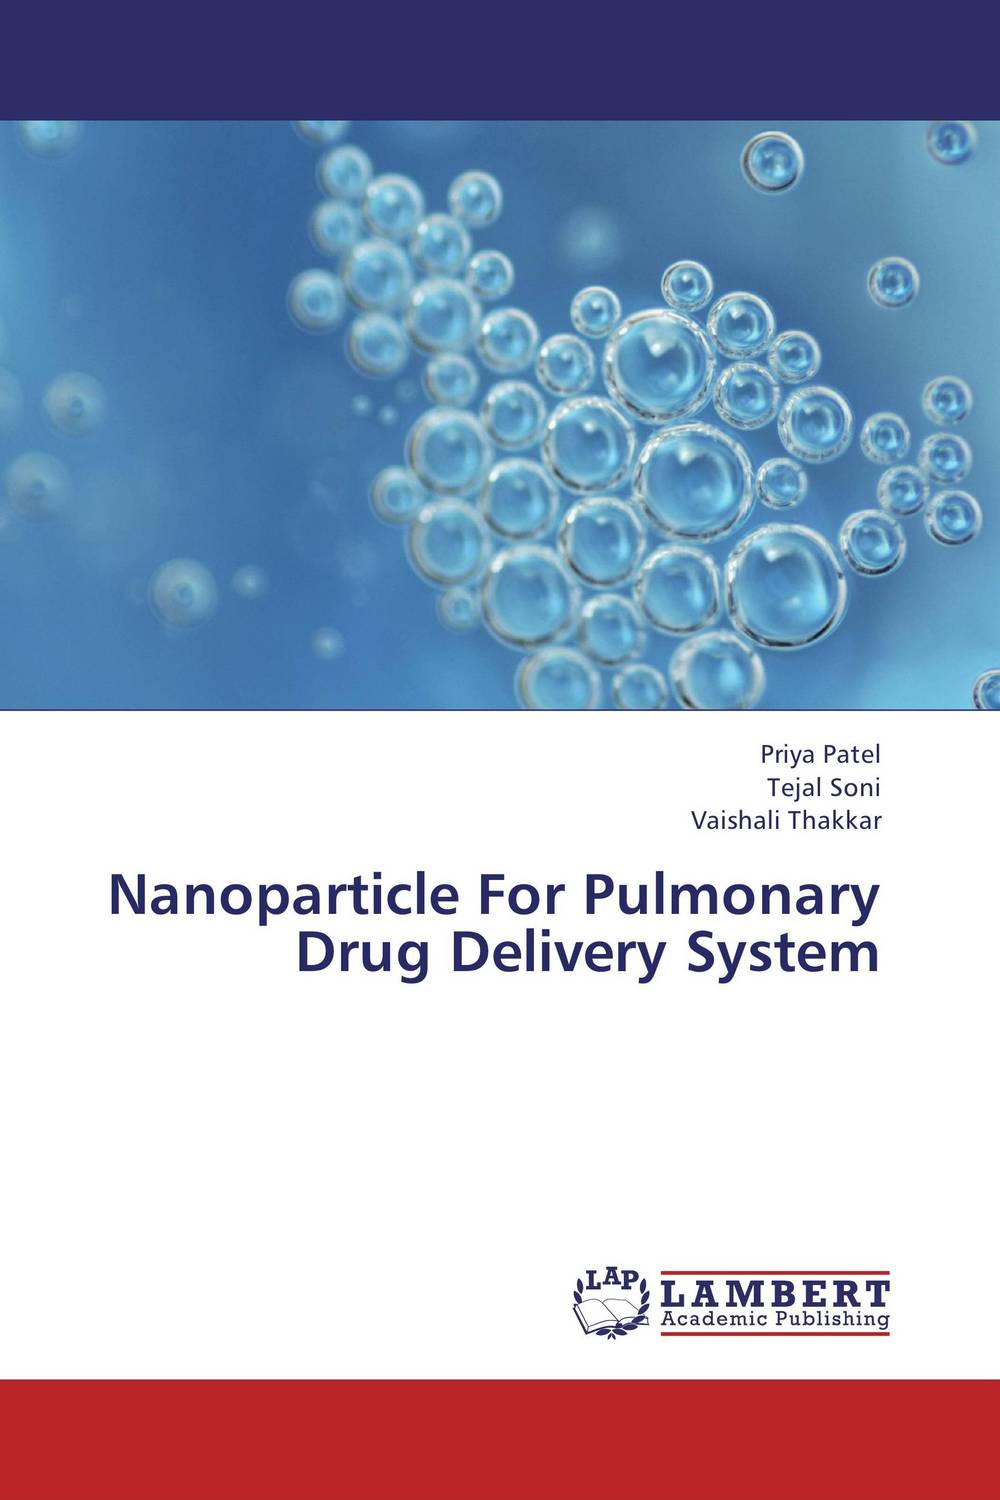 Nanoparticle For Pulmonary Drug Delivery System understanding drug misuse